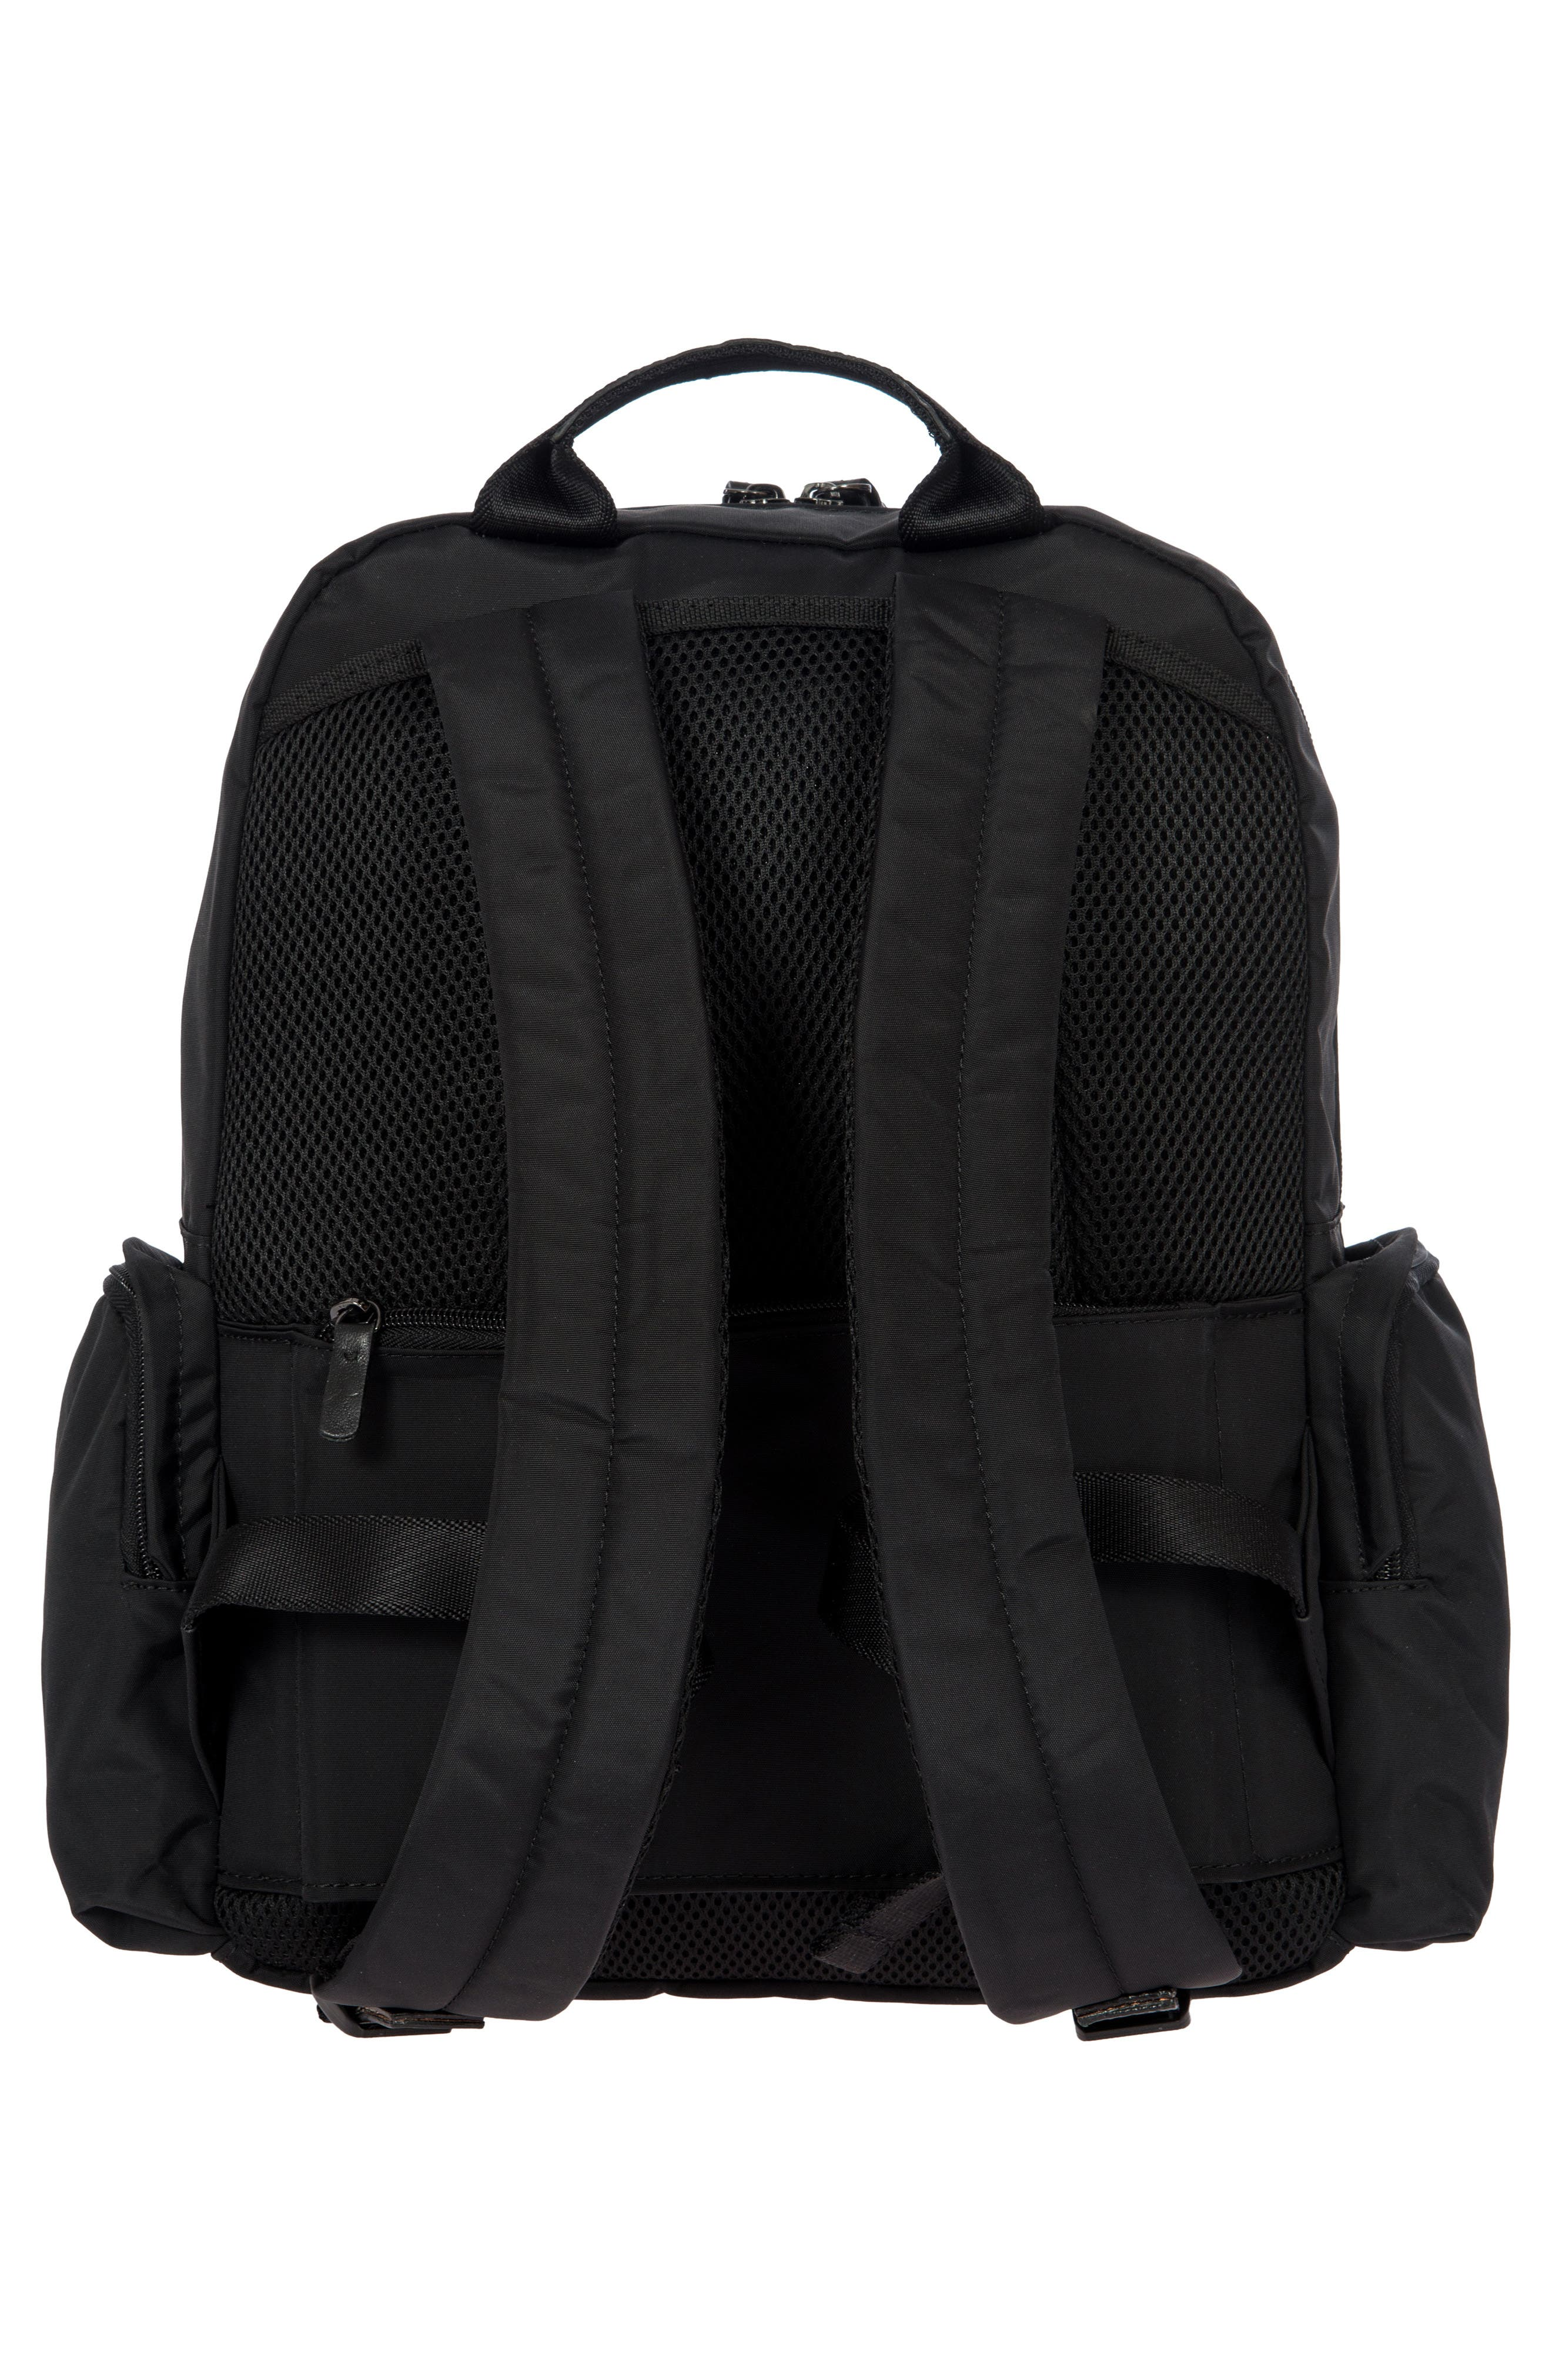 X-Travel Nomad Backpack,                             Alternate thumbnail 2, color,                             001